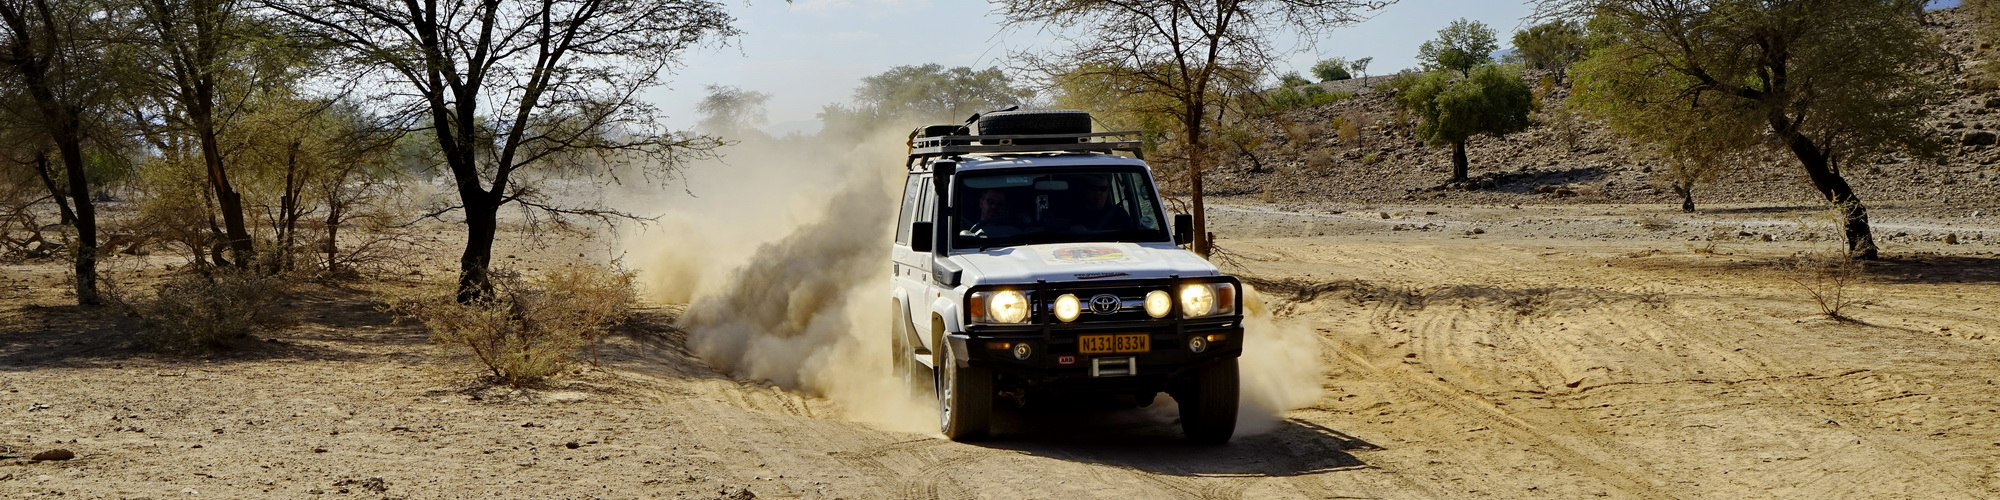 namibia-offroad-012.jpg